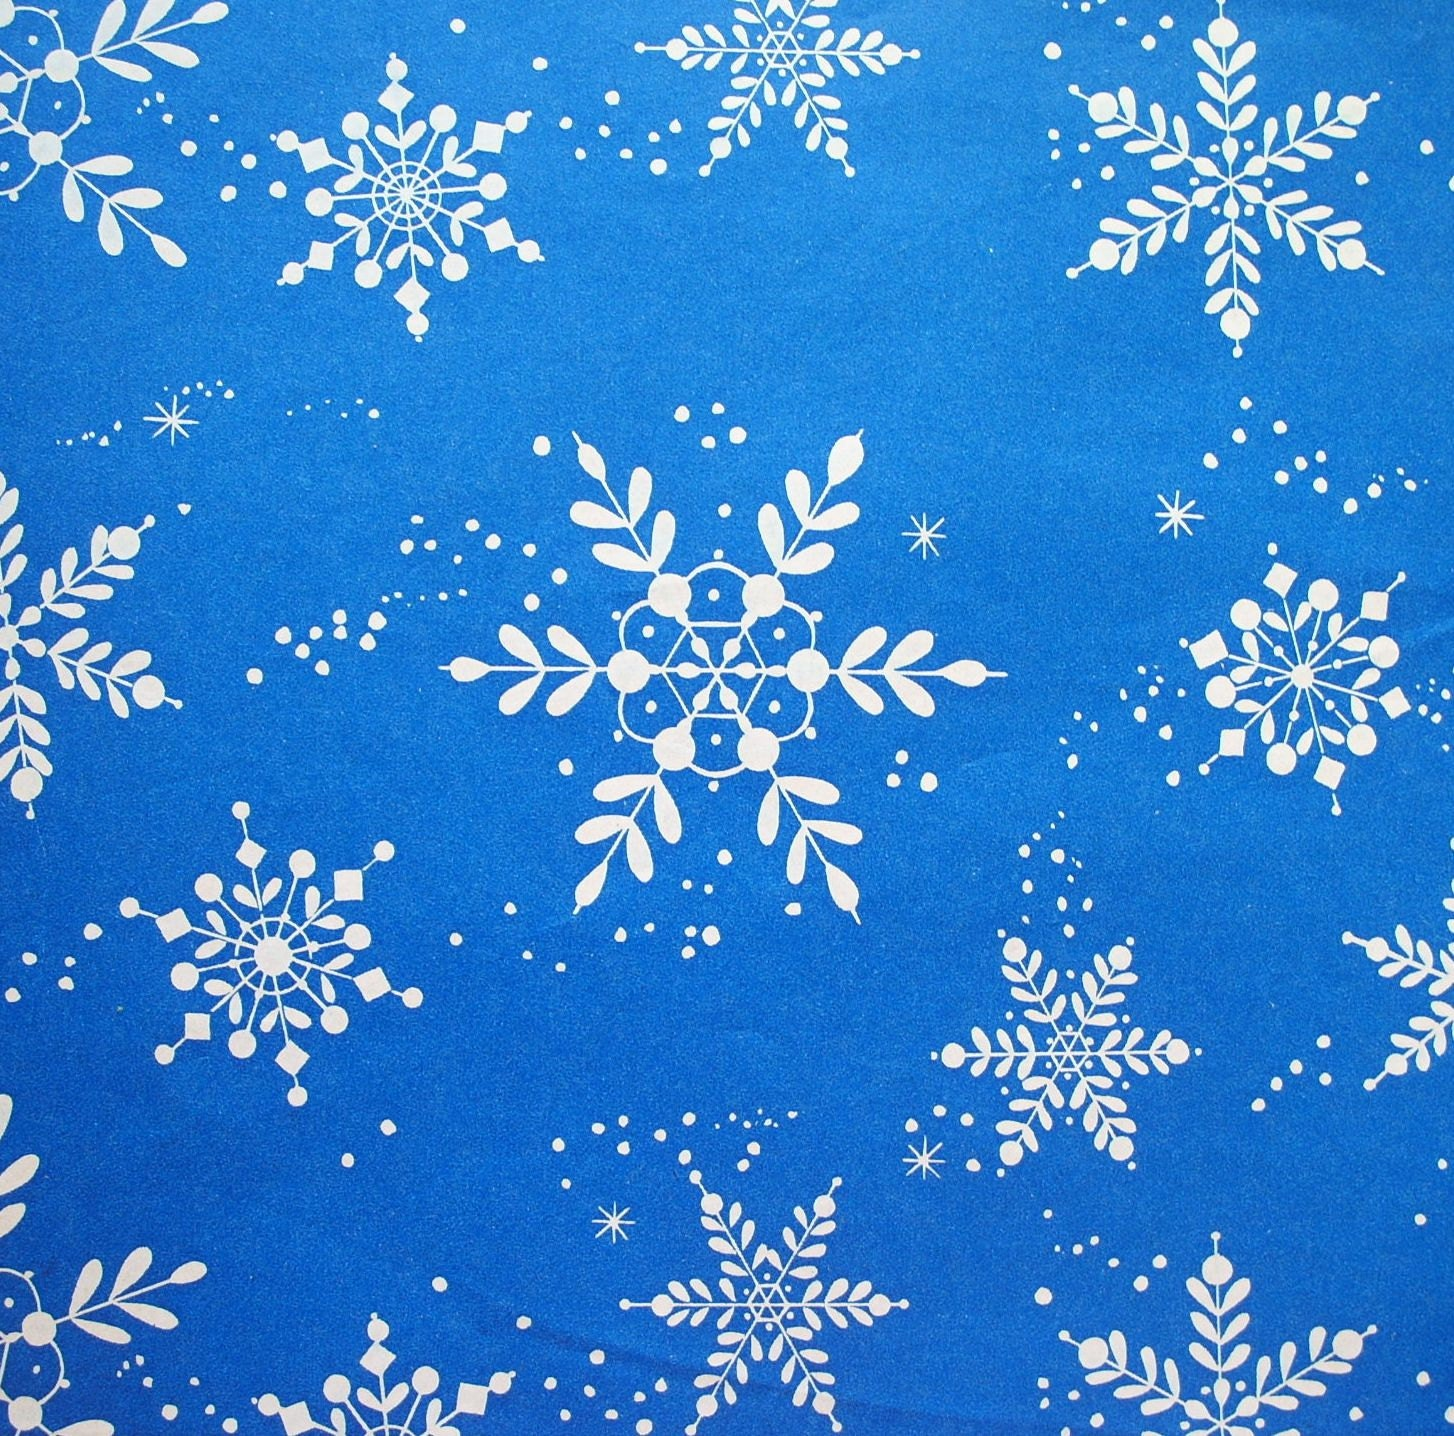 vintage white snowflakes on blue christmas wrapping paper full. Black Bedroom Furniture Sets. Home Design Ideas